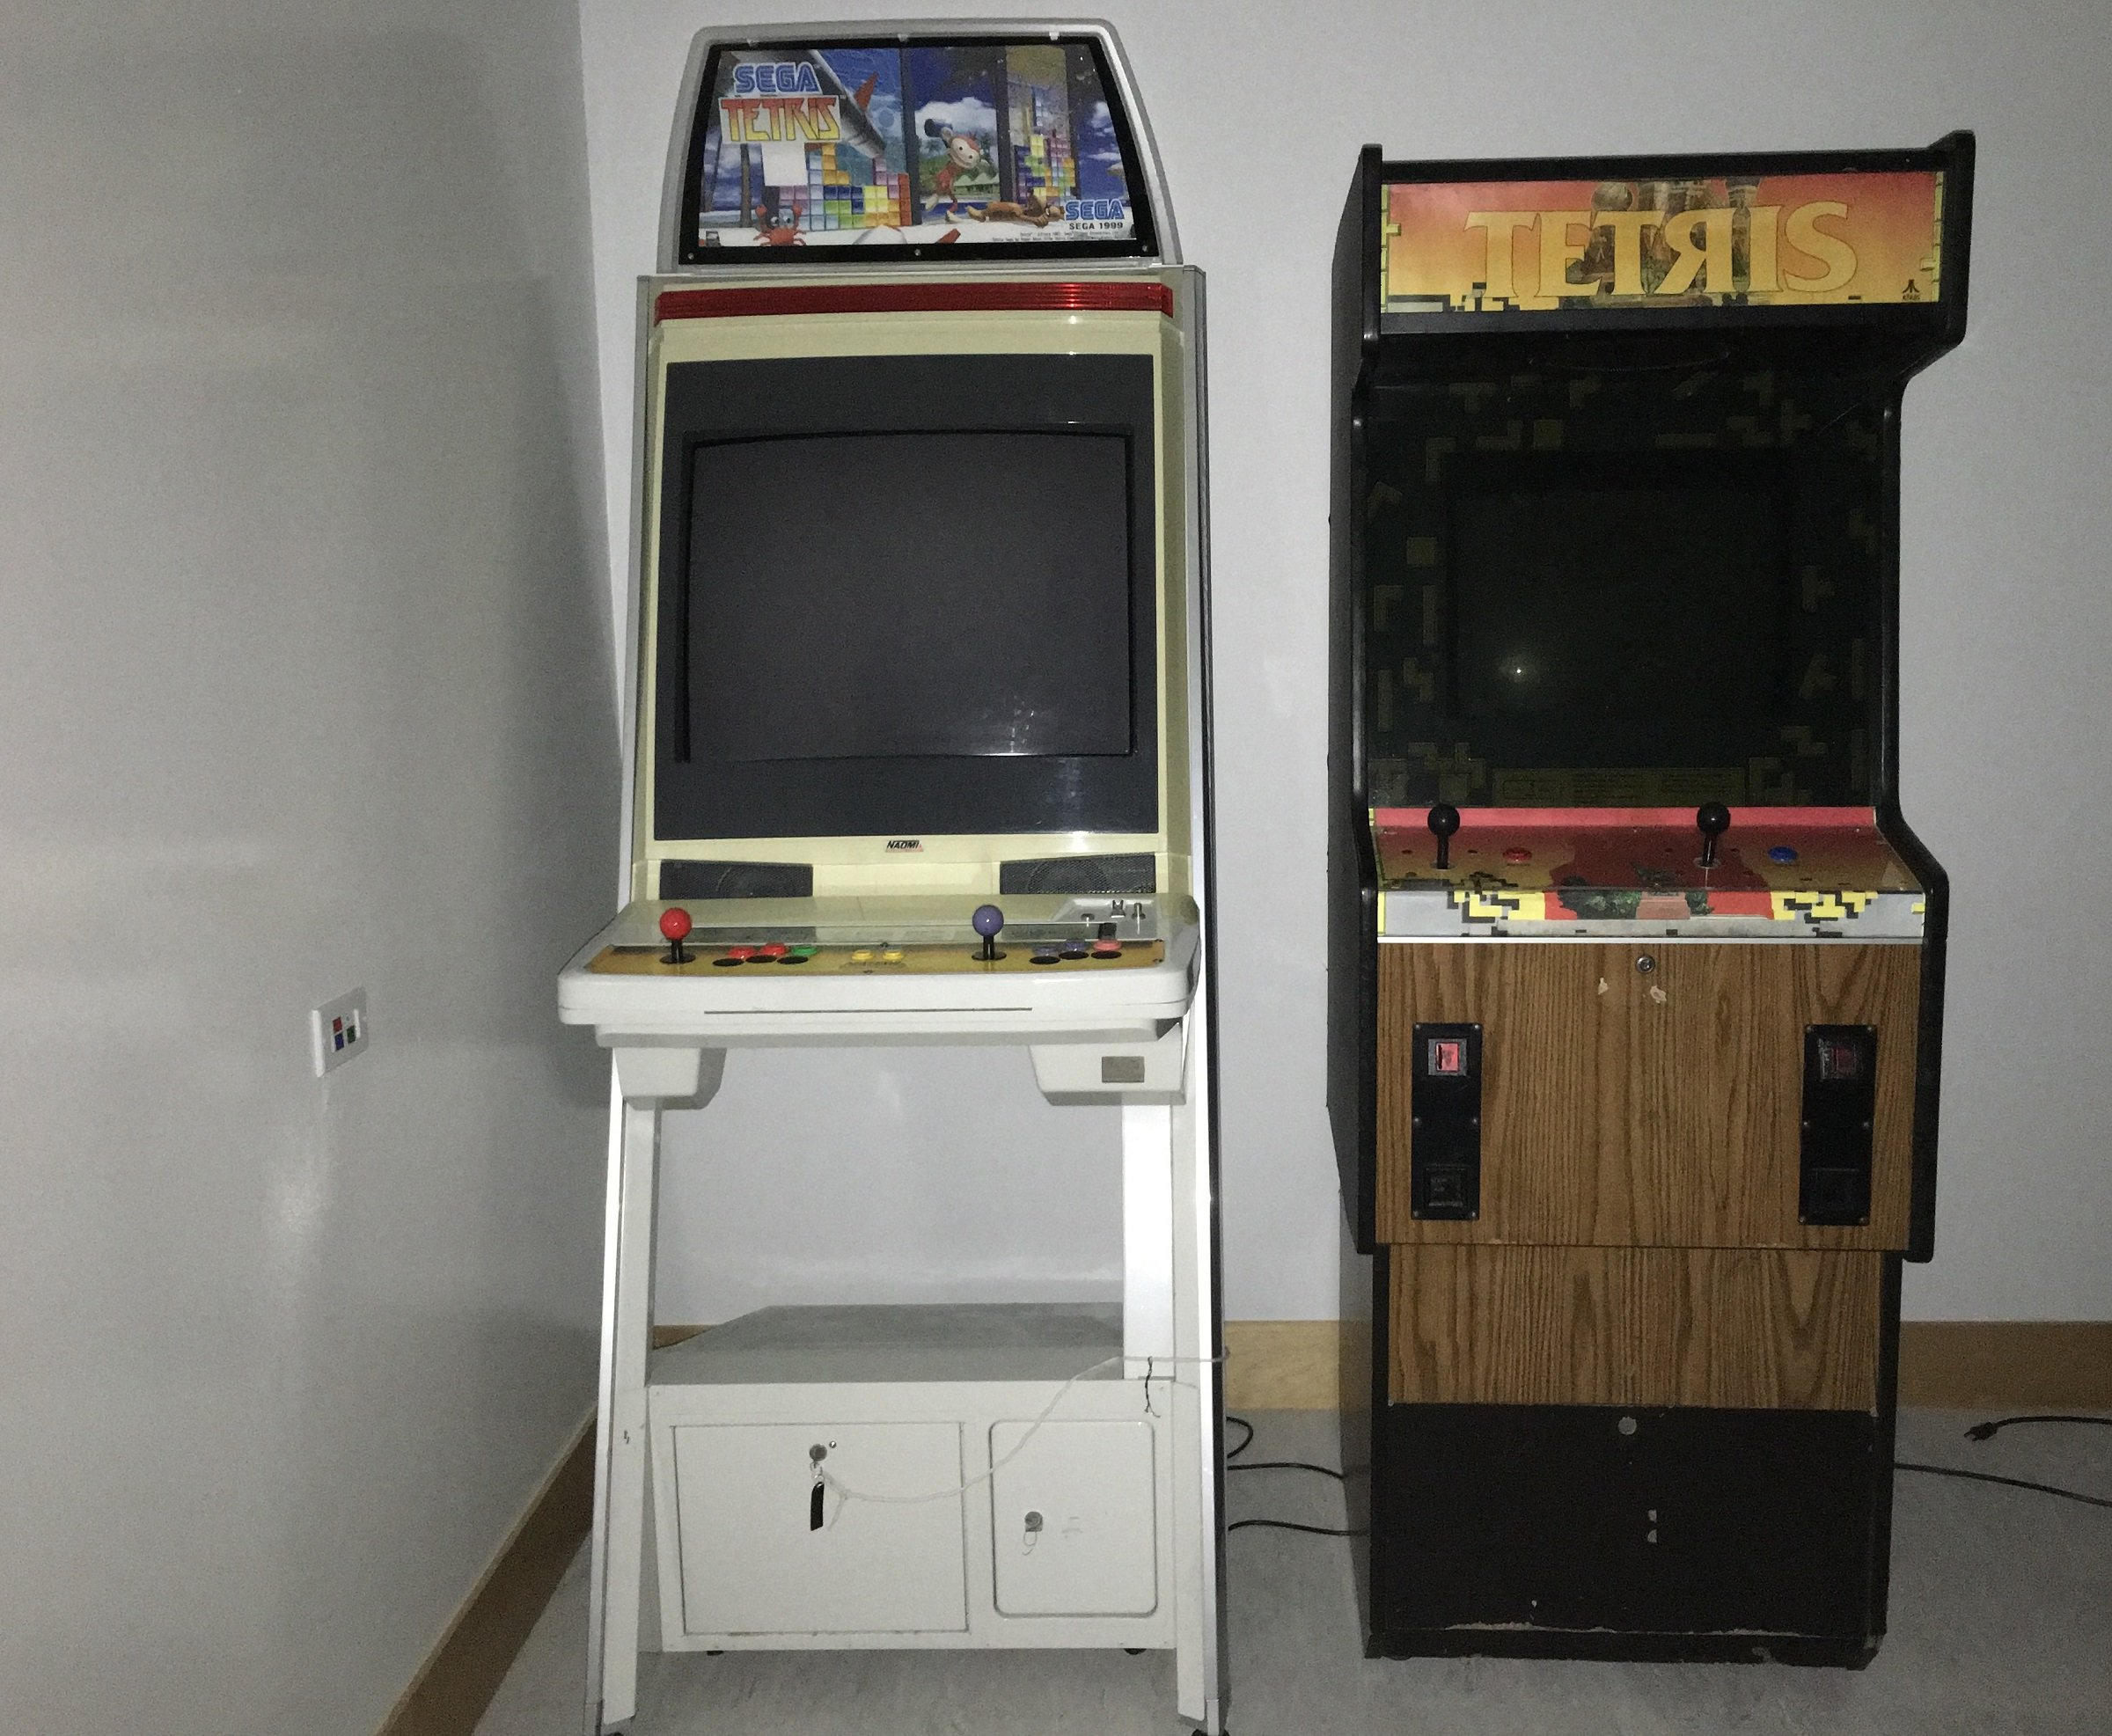 Have You Ever Played Tetris In The Arcade?